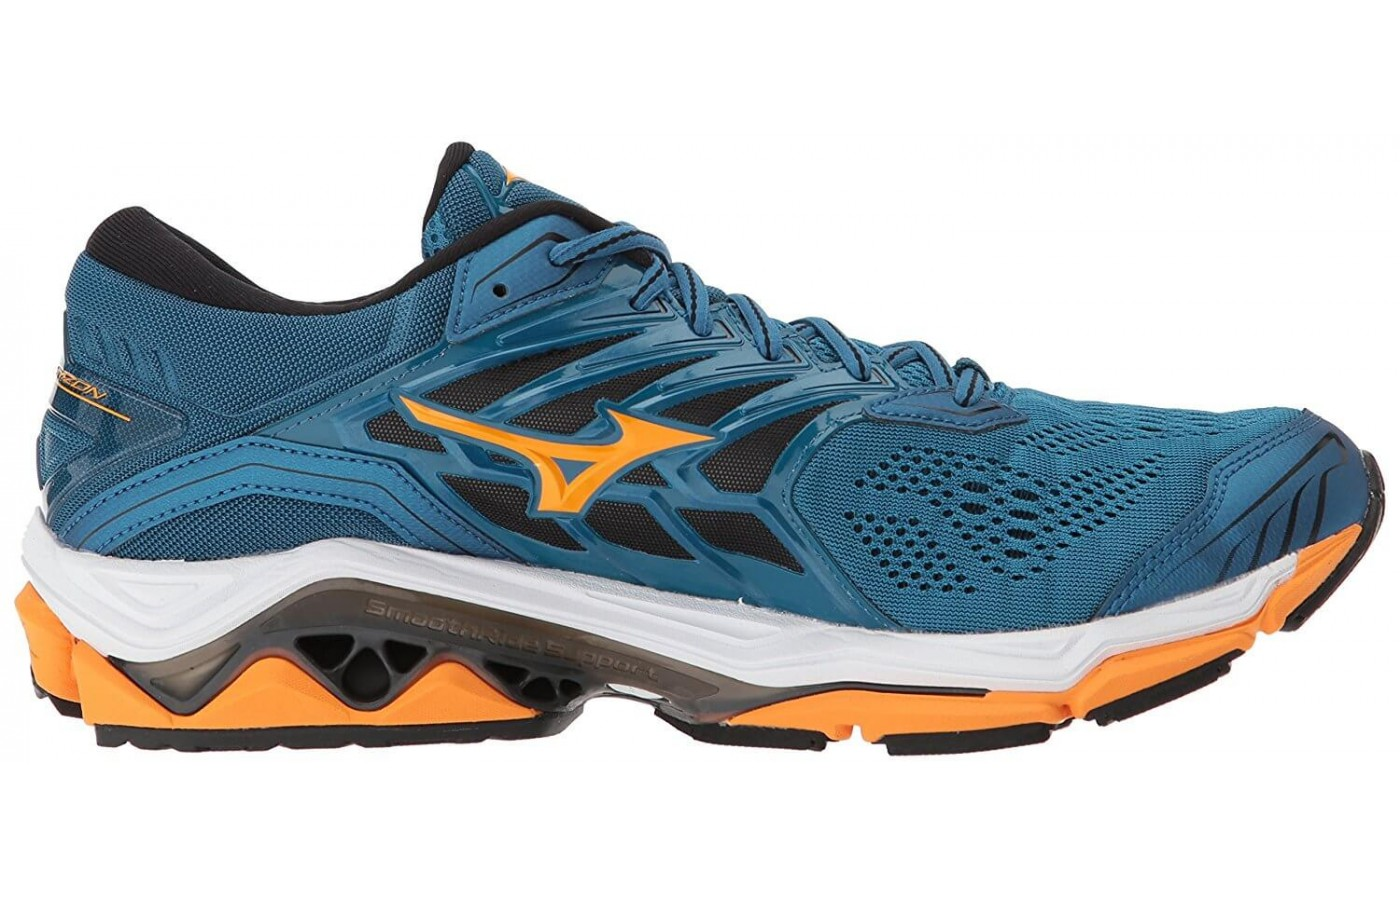 The Mizuno Wave Horizon 2 features Cloudwave technology